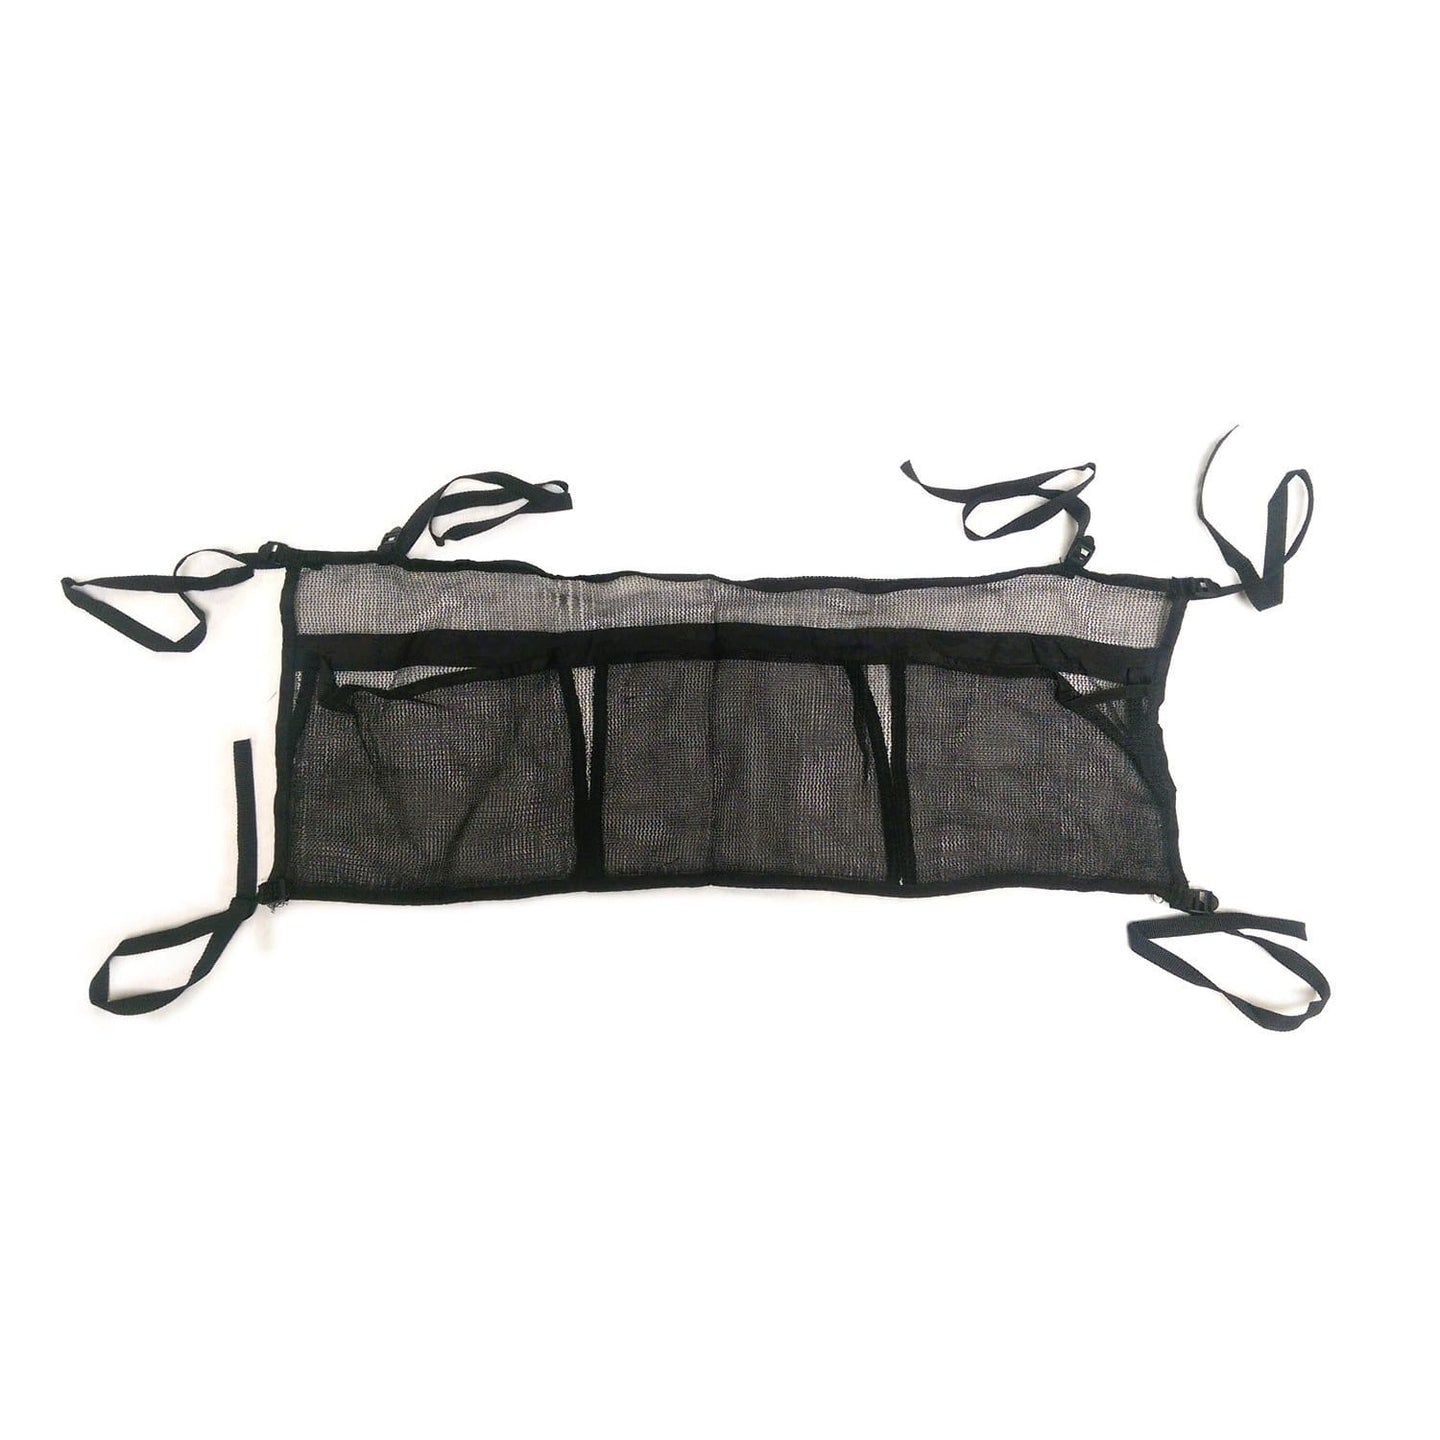 Skybound Black Three- Pouch Trampoline Shoe Bag - Trampoline Accessories